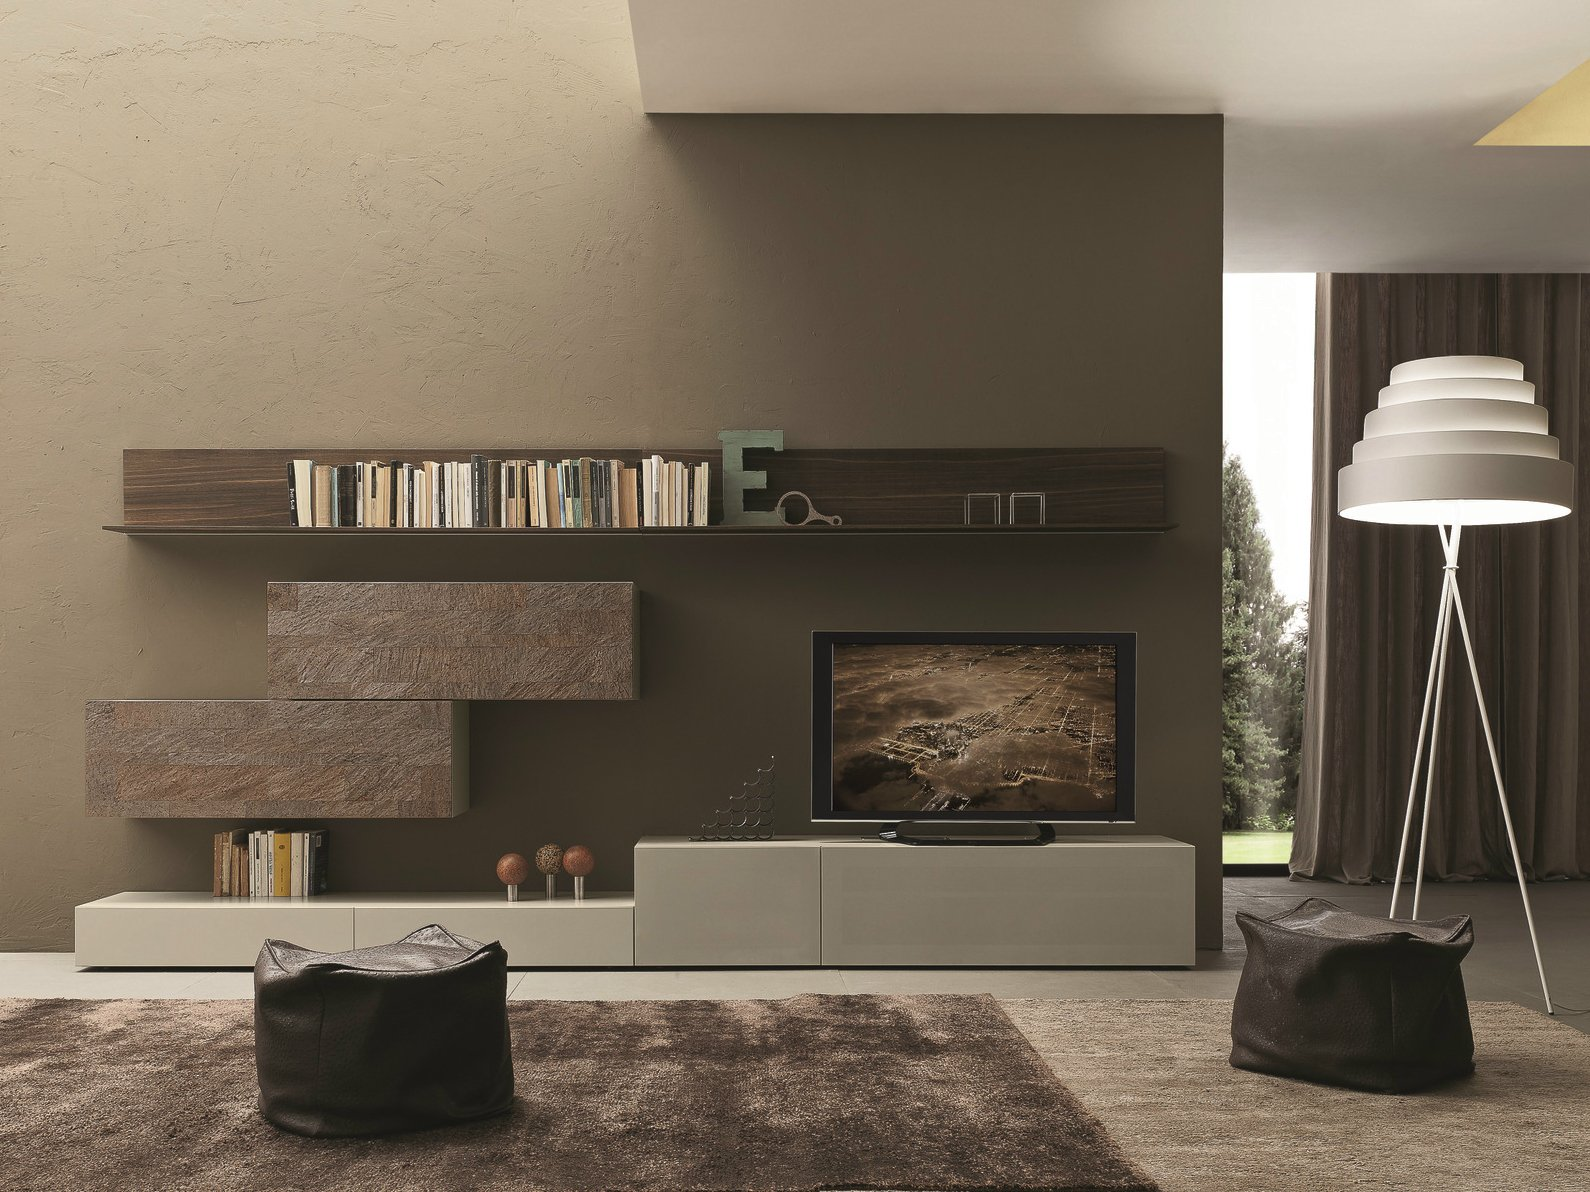 Sectional wall mounted tv wall system i modulart 274 by for Www presotto it